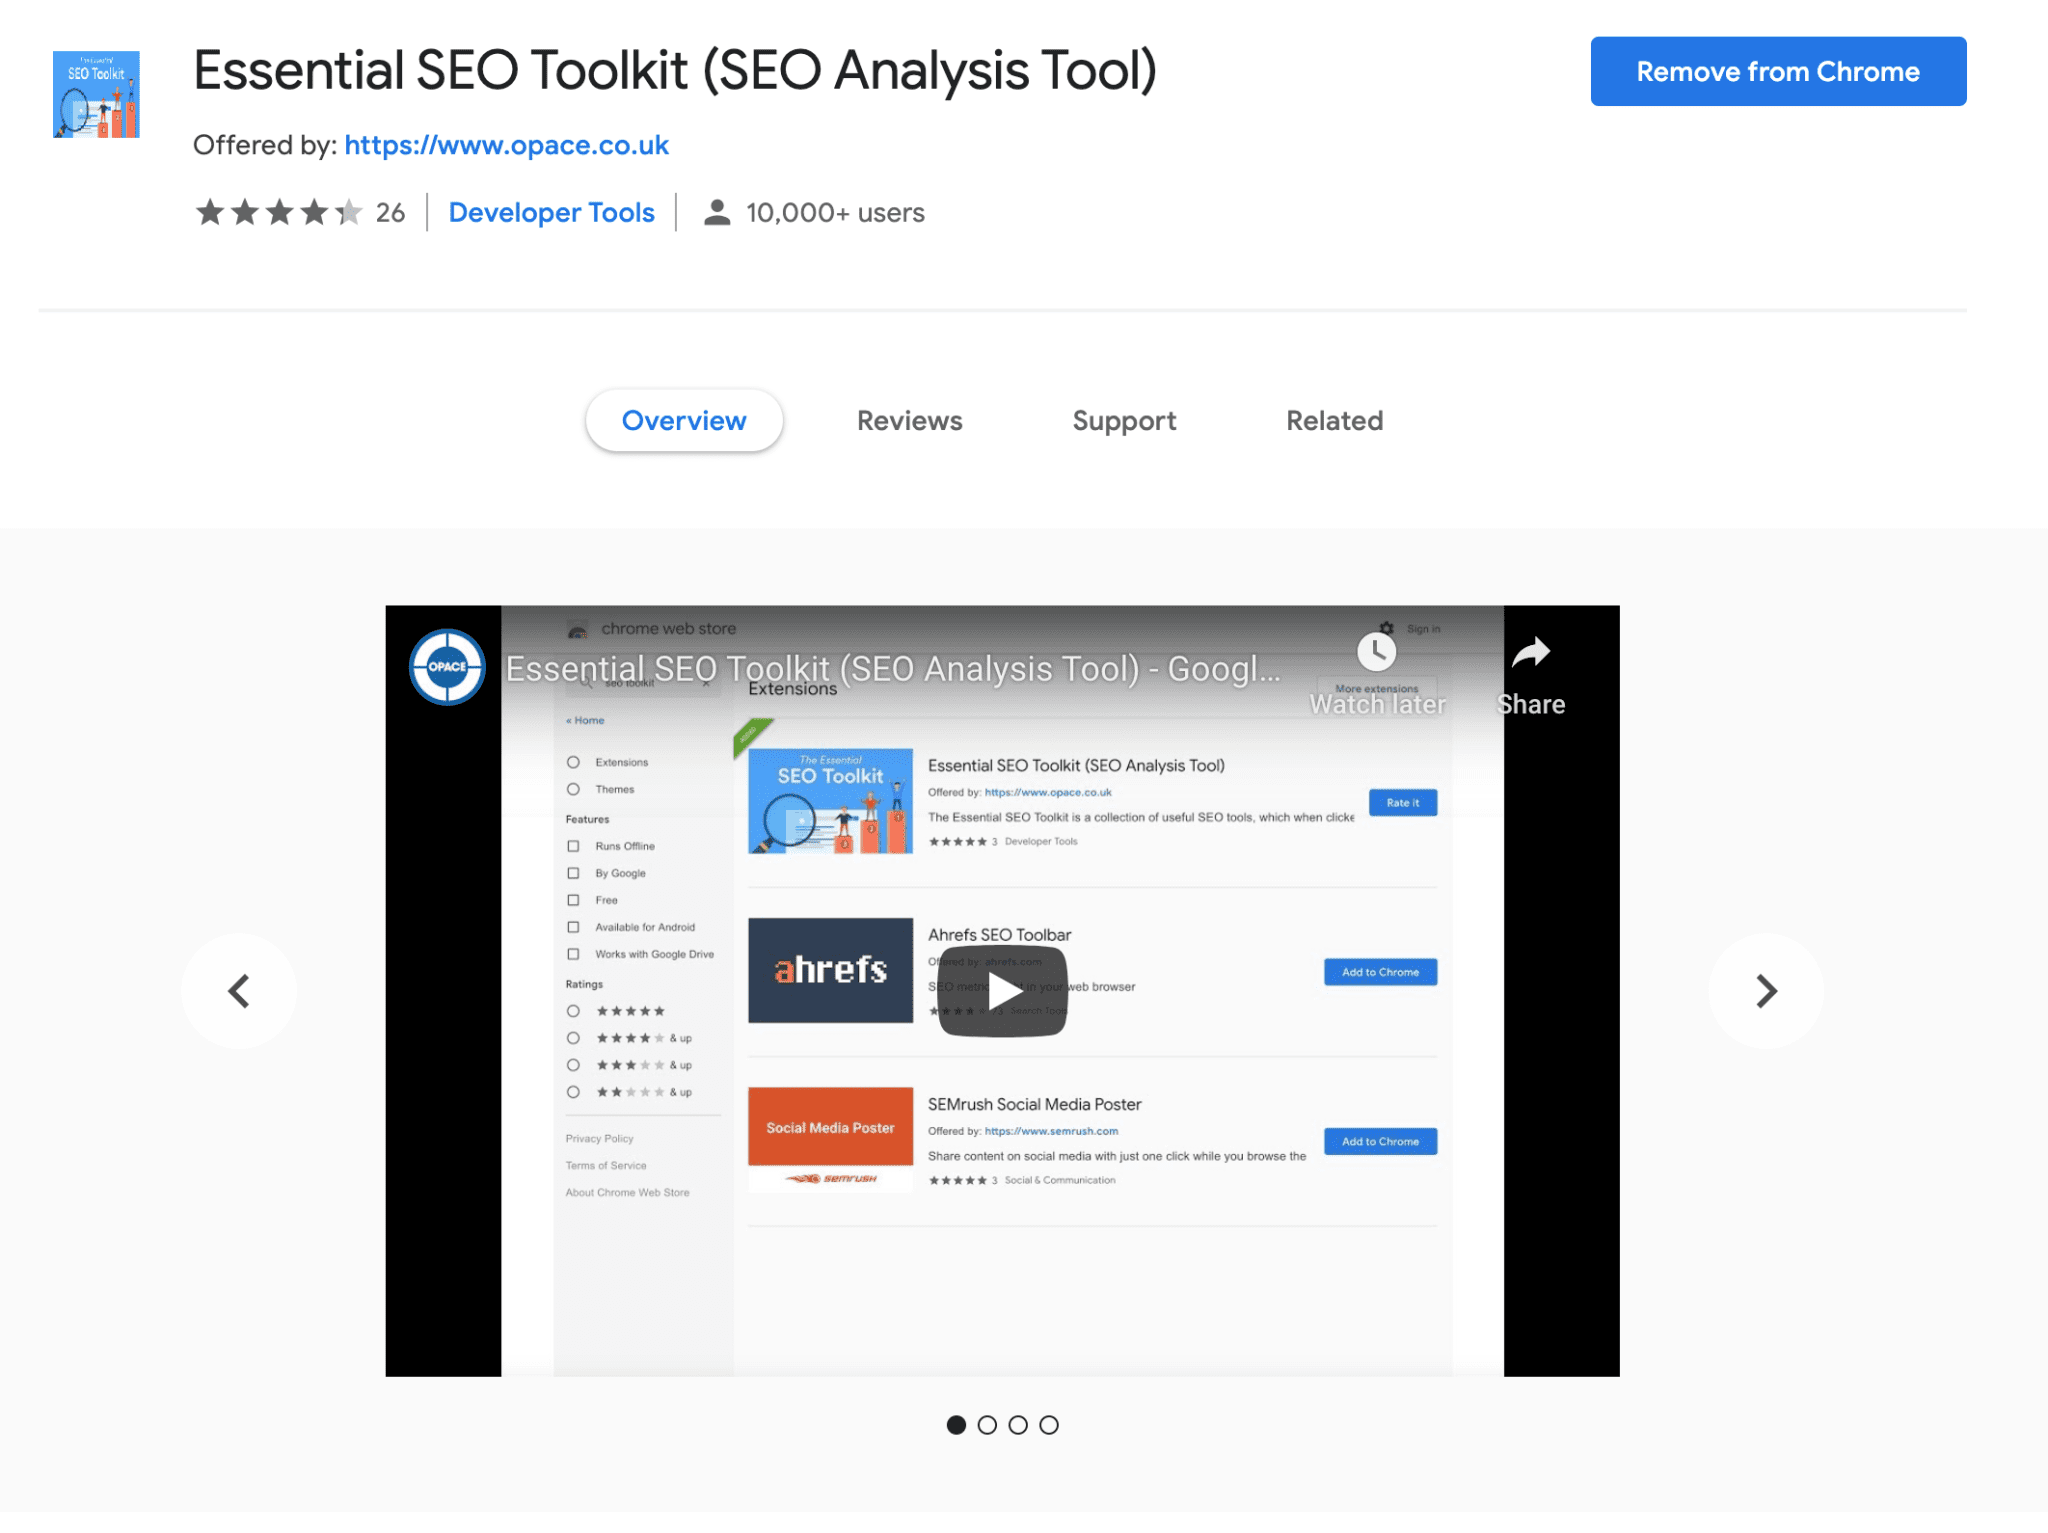 Opace Essential SEO Toolkit